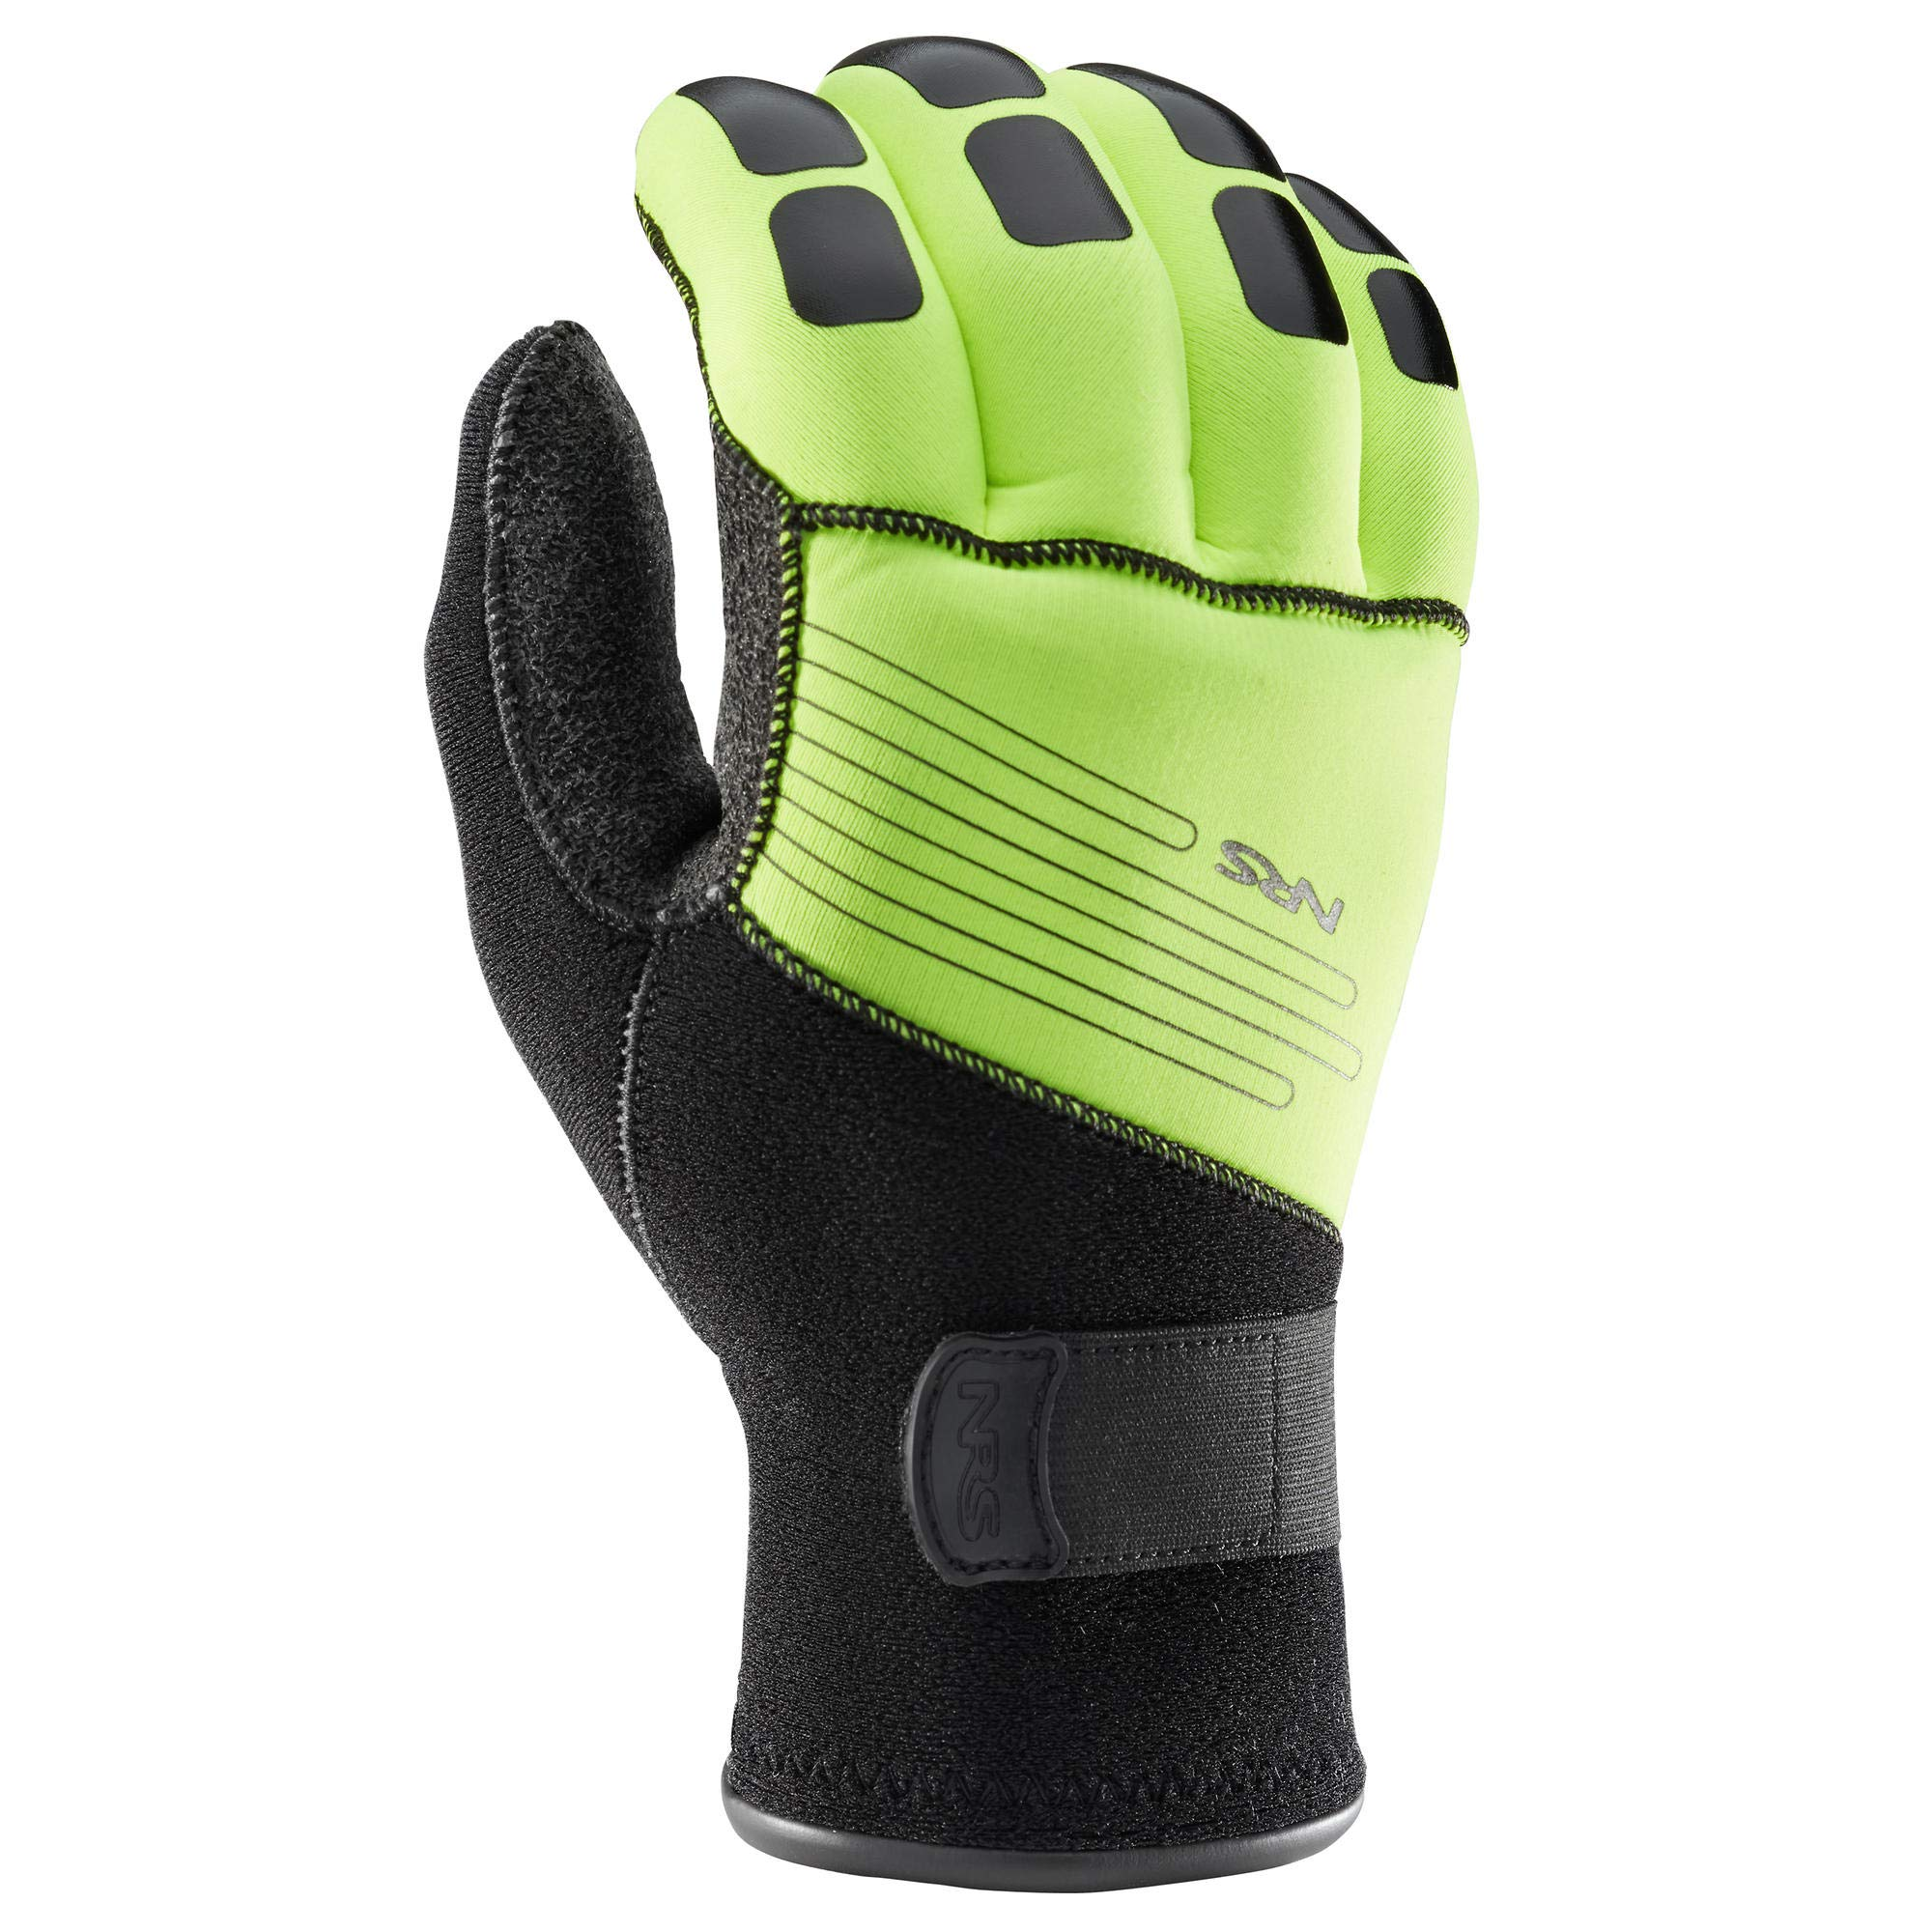 NRS Reactor Rescue Glove High Vis Green Large